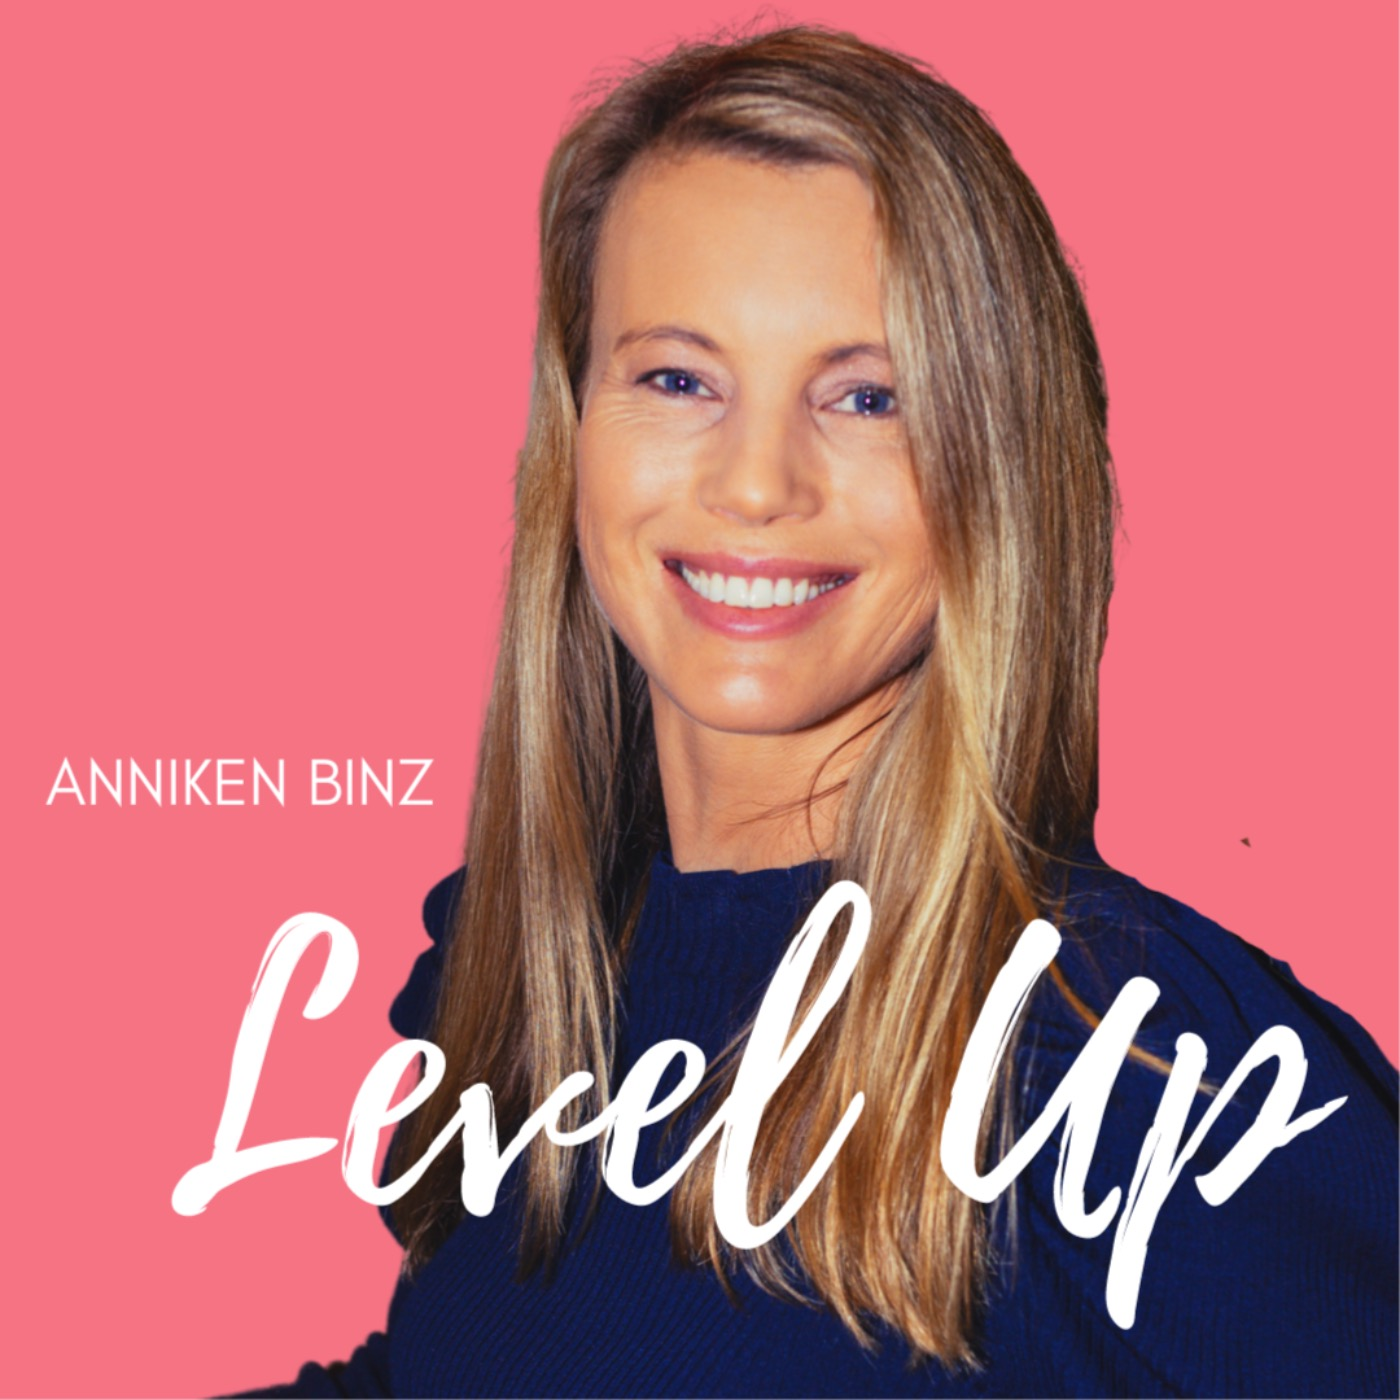 Level Up med Anniken Binz